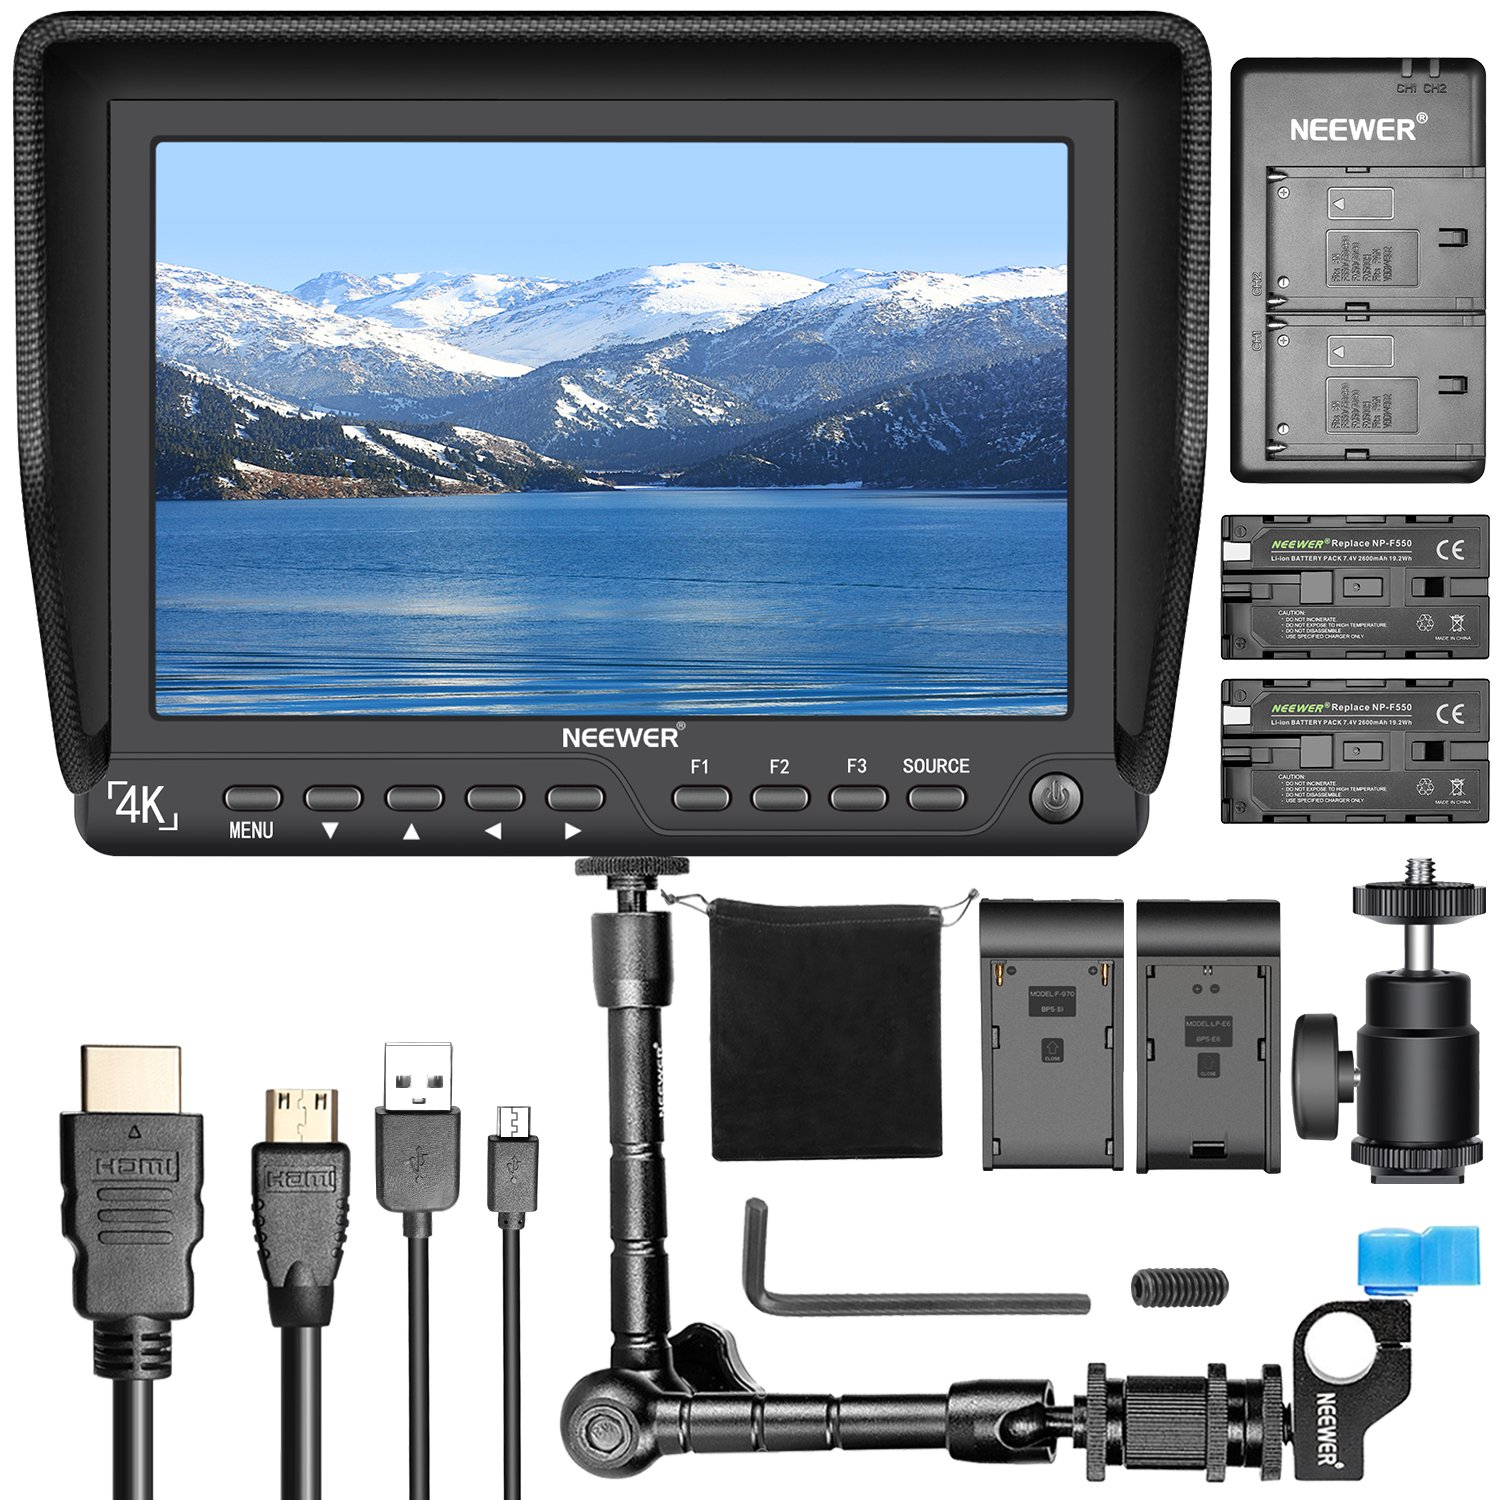 Neewer NW-S7 7 inches 4K HD Camera Field Monitor Kit:1920X1200 IPS Screen Camera Monitor, 11.8 inches Magic Arm, Dual Battery Charger, 2 Packs F550 Replacement Battery for Sony Canon Nikon Olympus Pentax 90090269